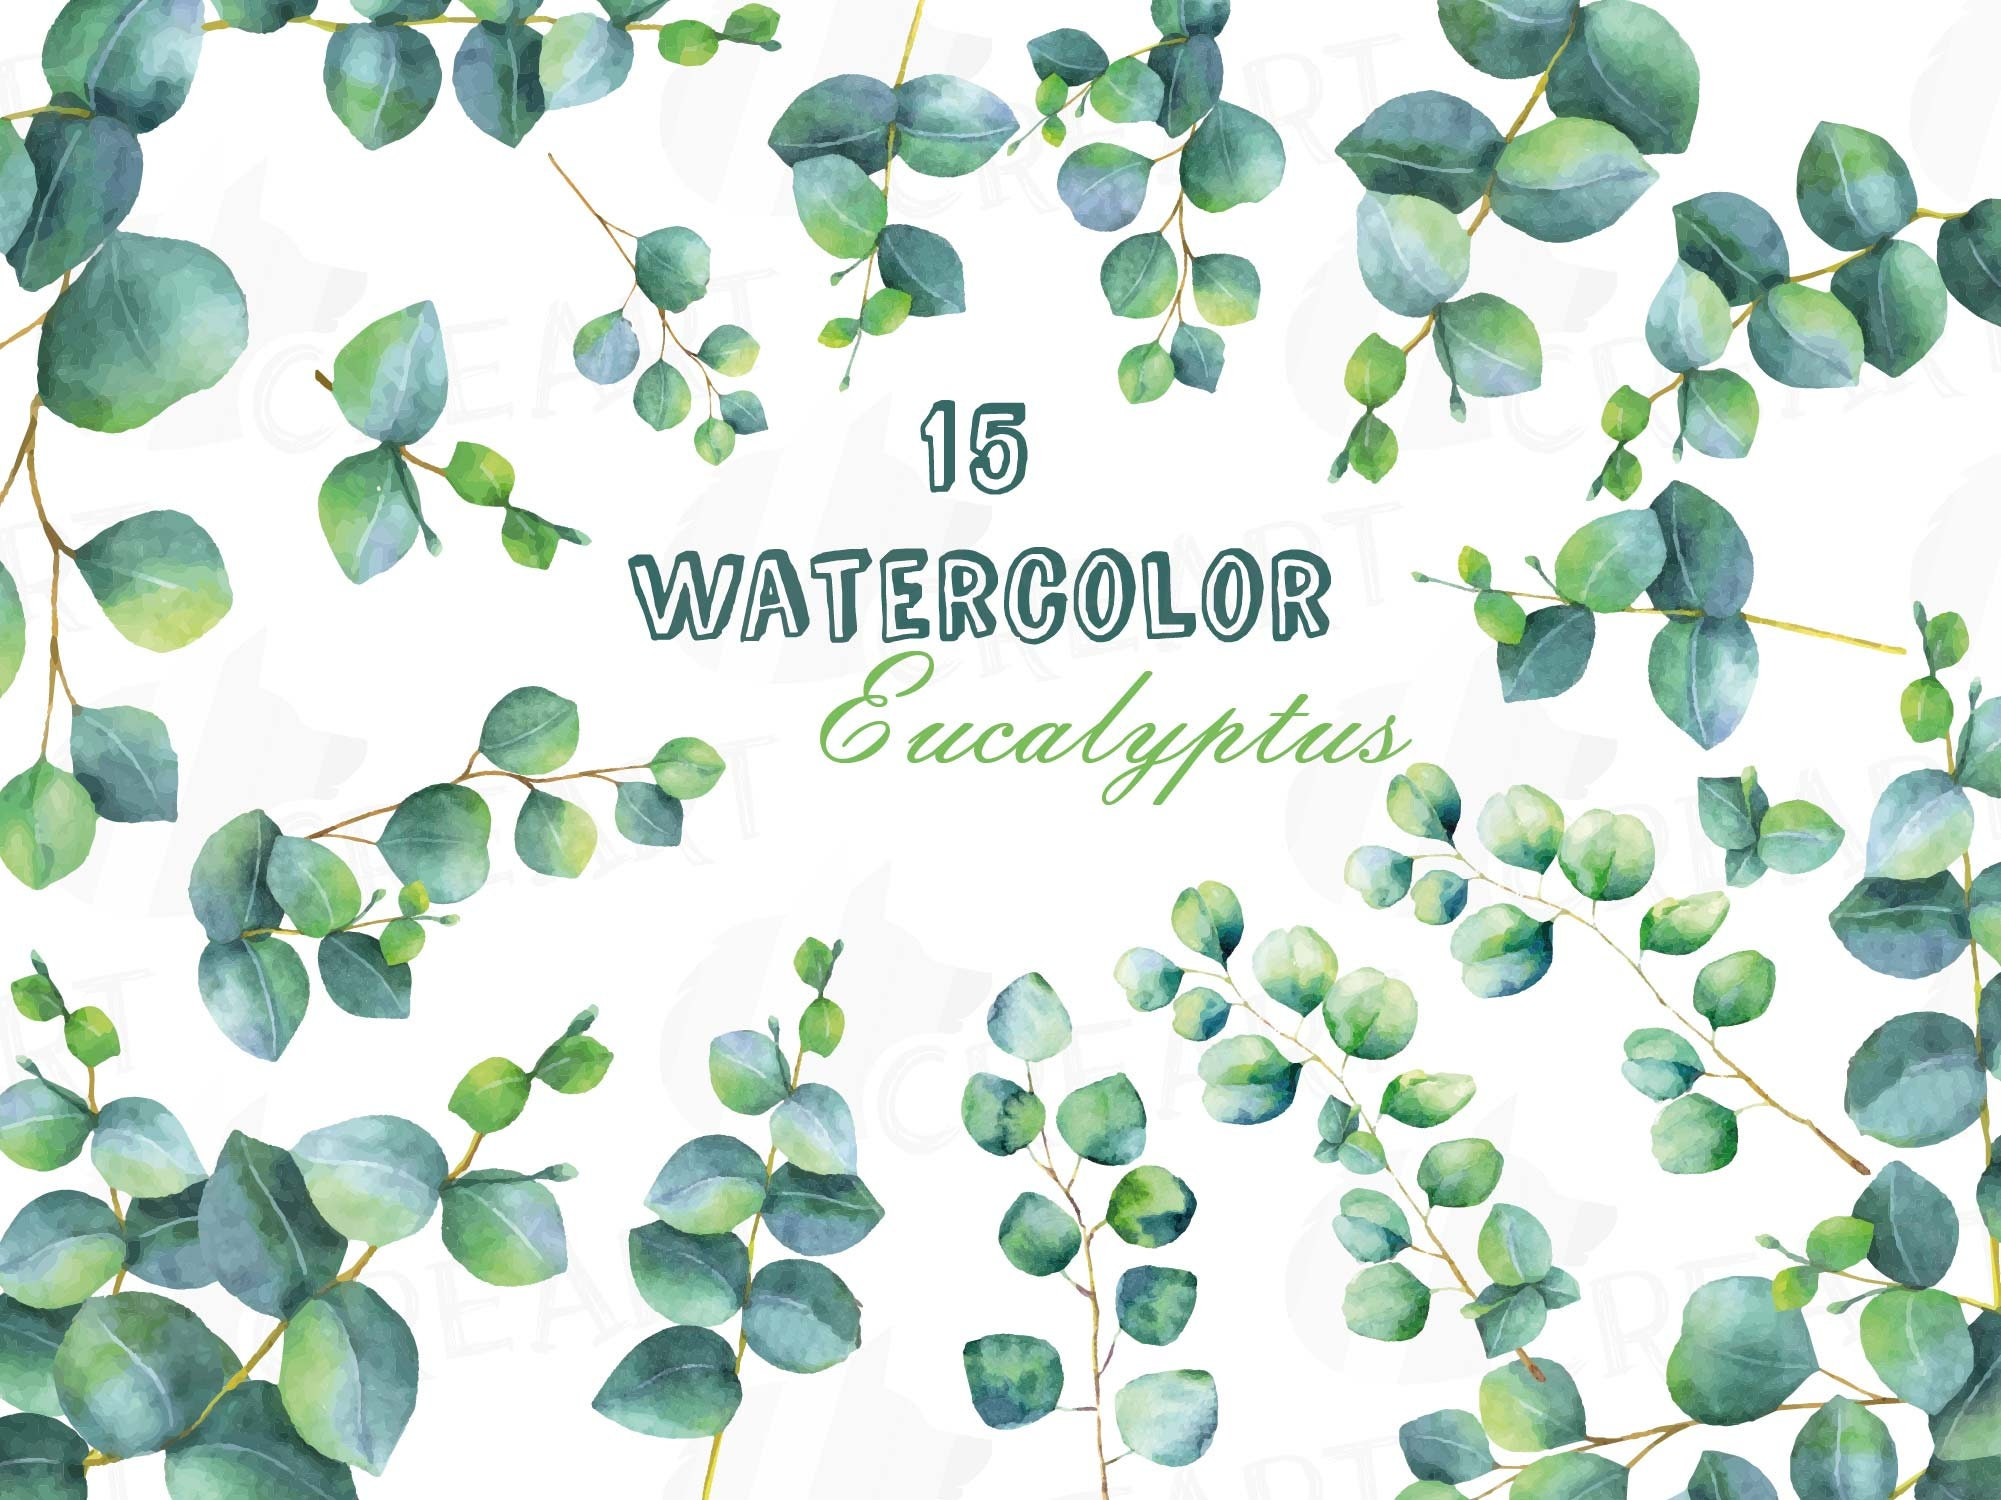 Eucalyptus leaves and branches watercolor wedding clip art. Eucalyptus  bridal shower design elements. PNG, jpg, svg, vector files included